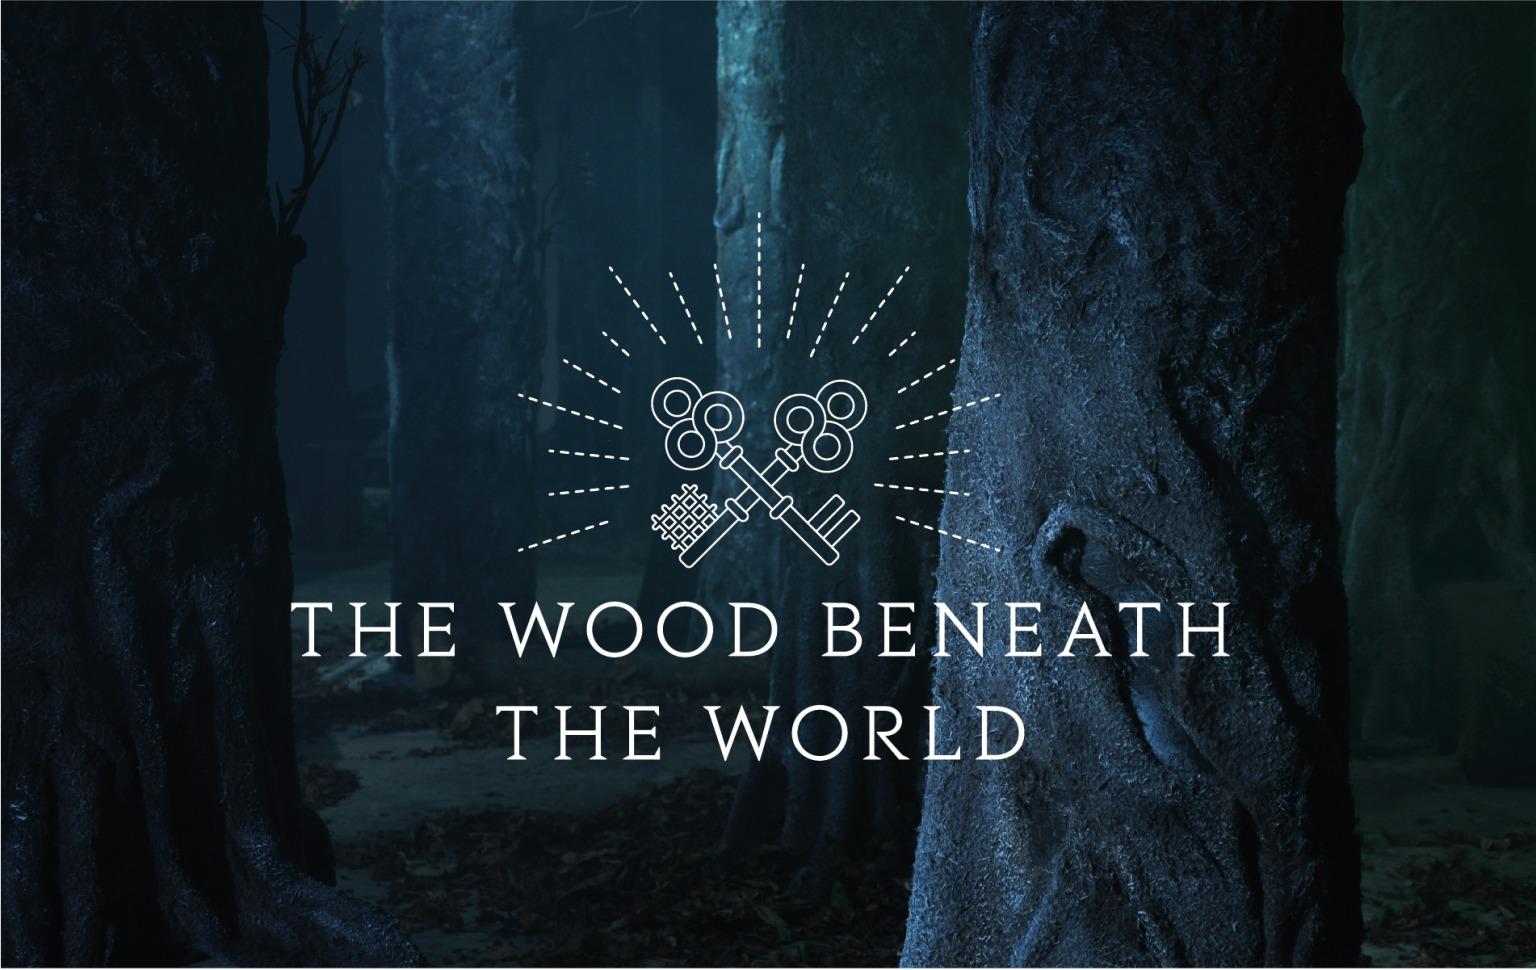 The Wood Beneath The World